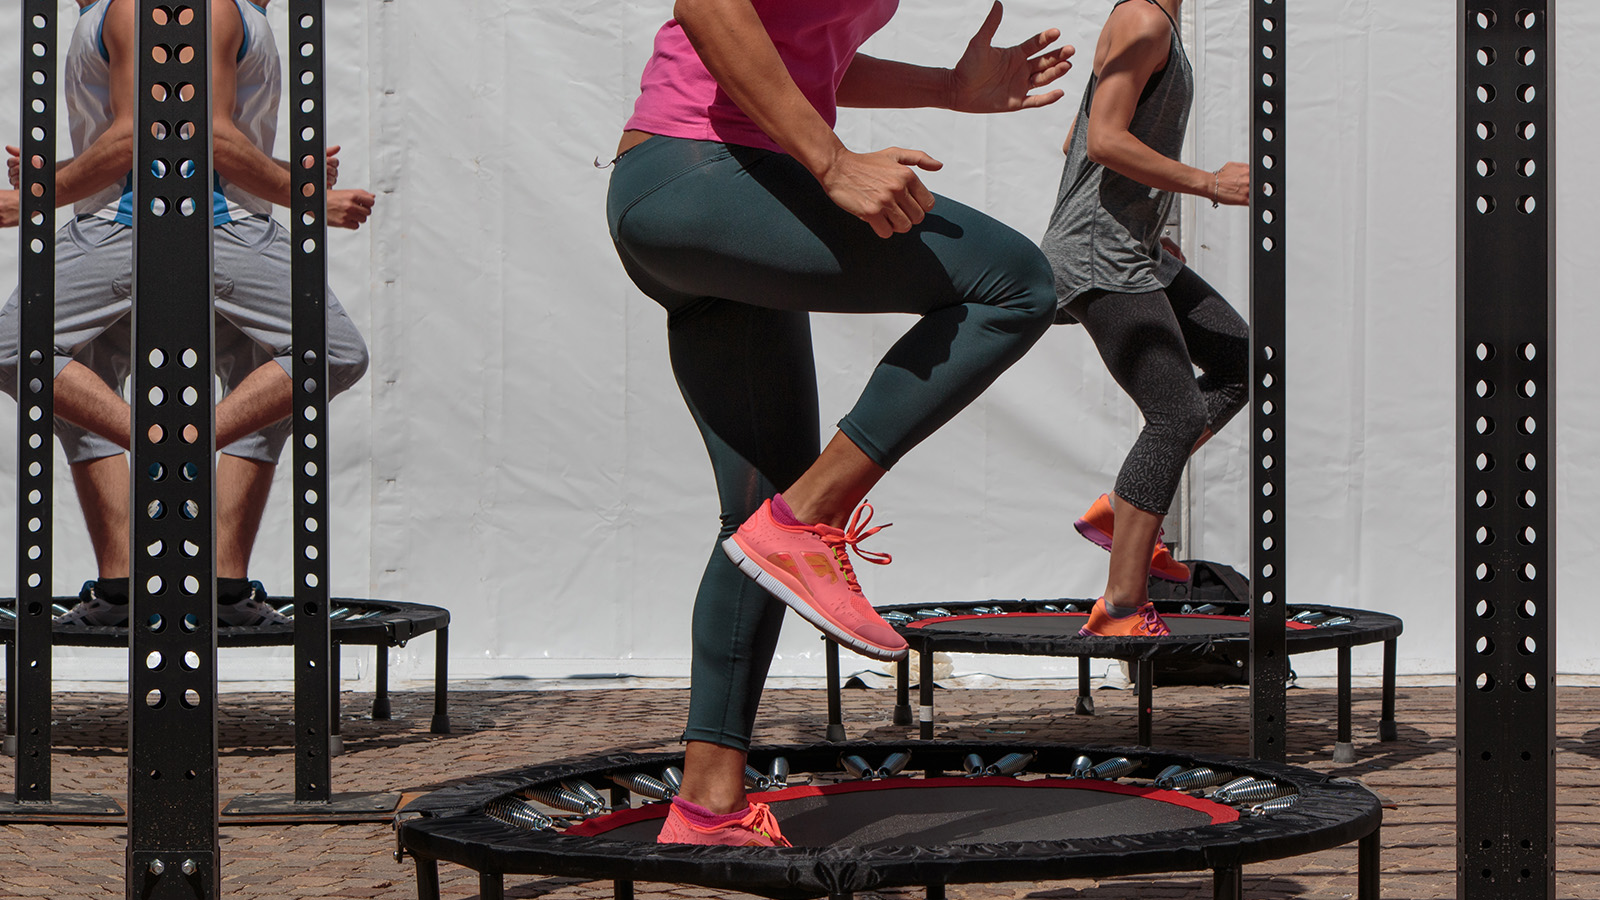 Trampolin-Workout Jumping lekfit